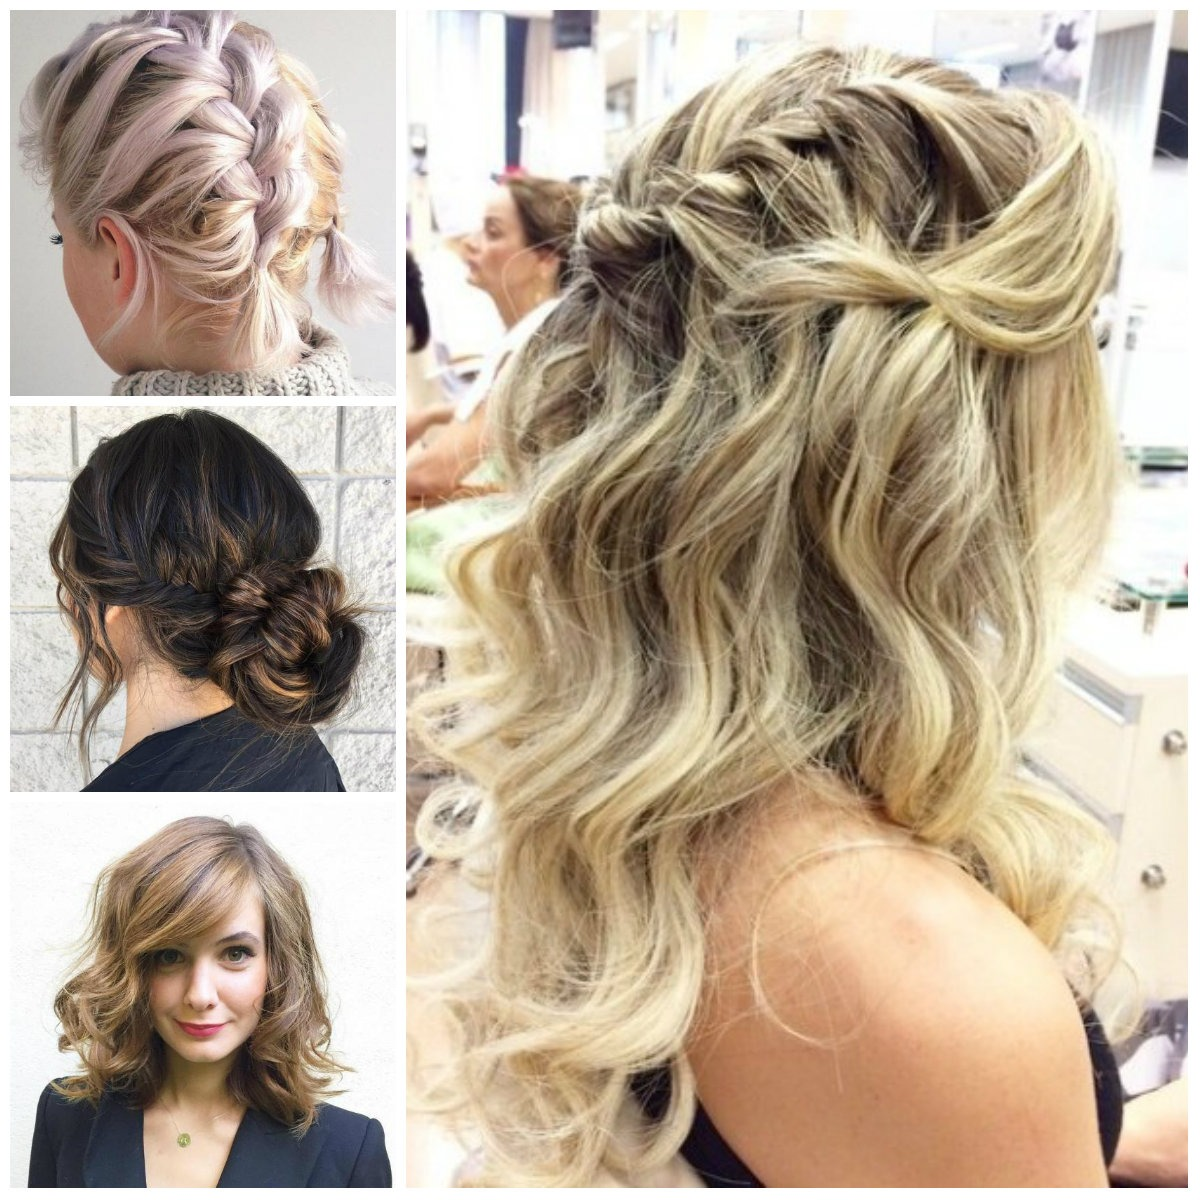 Perfect imperfect hairstyles for all hair lengths